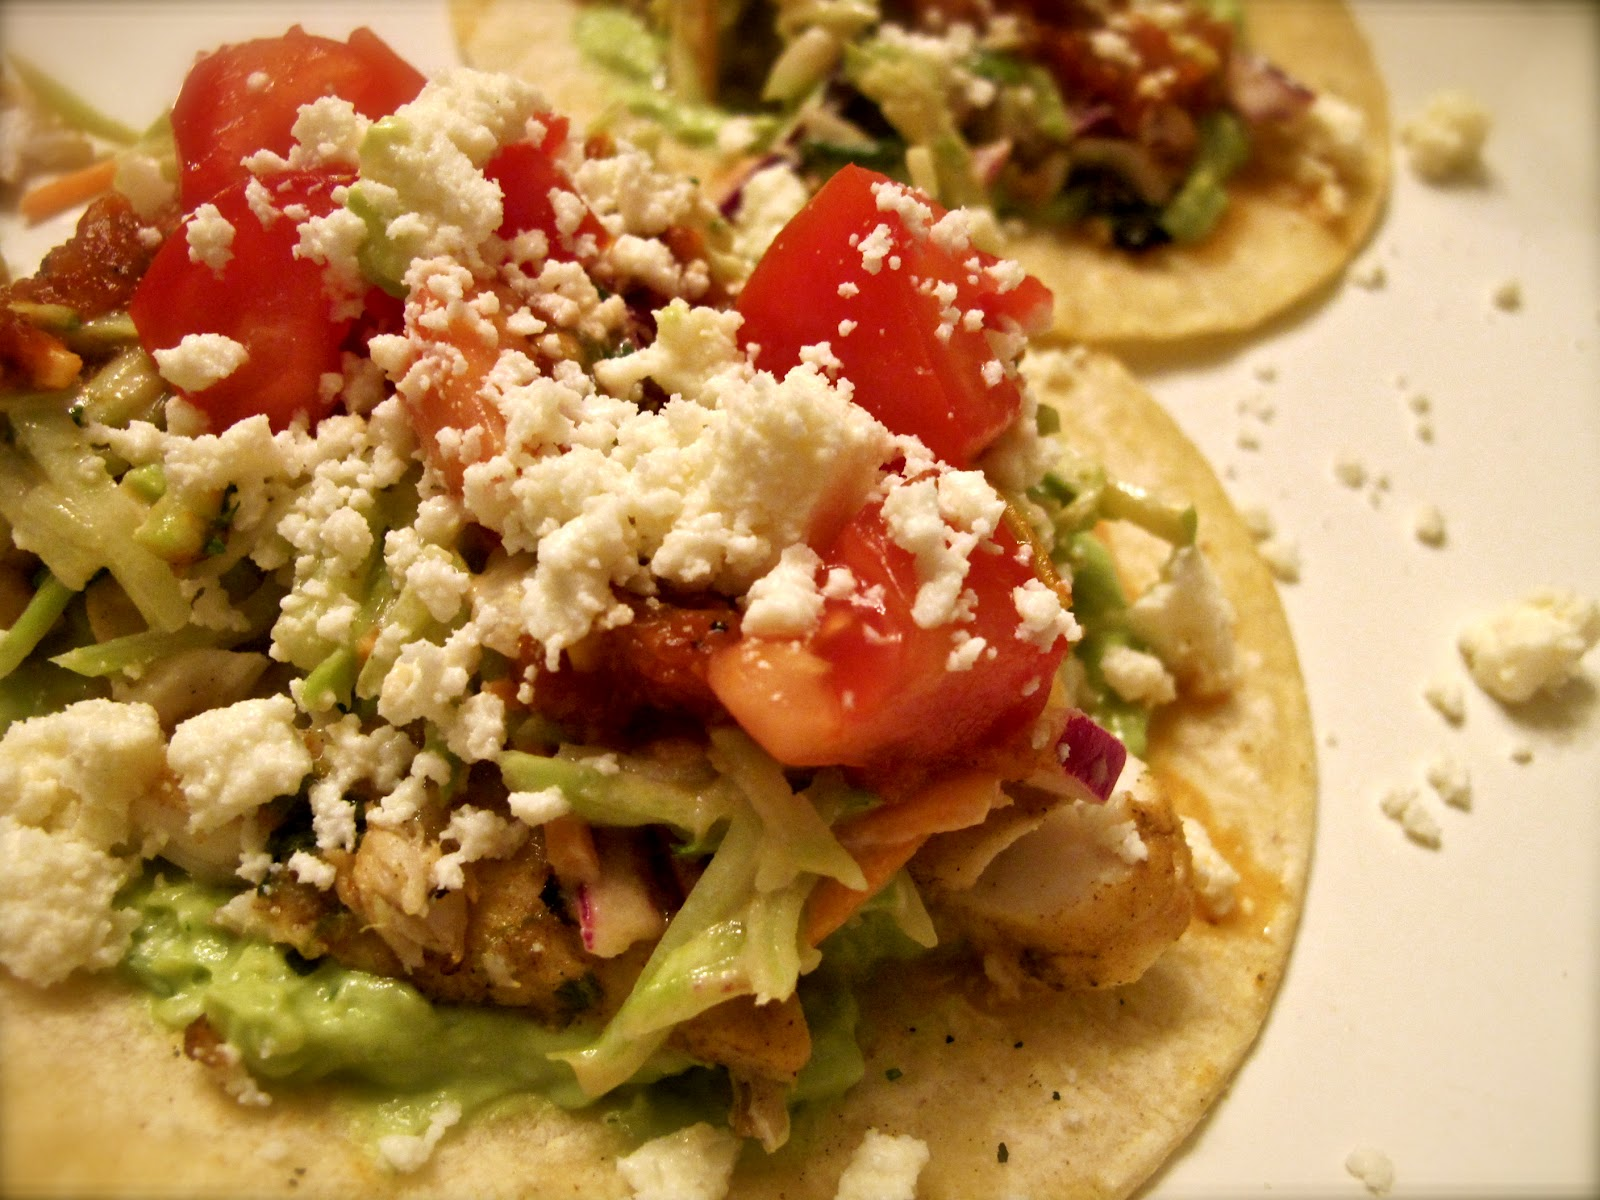 Grilled fish tacos recipe bing images for Fish taco recipe